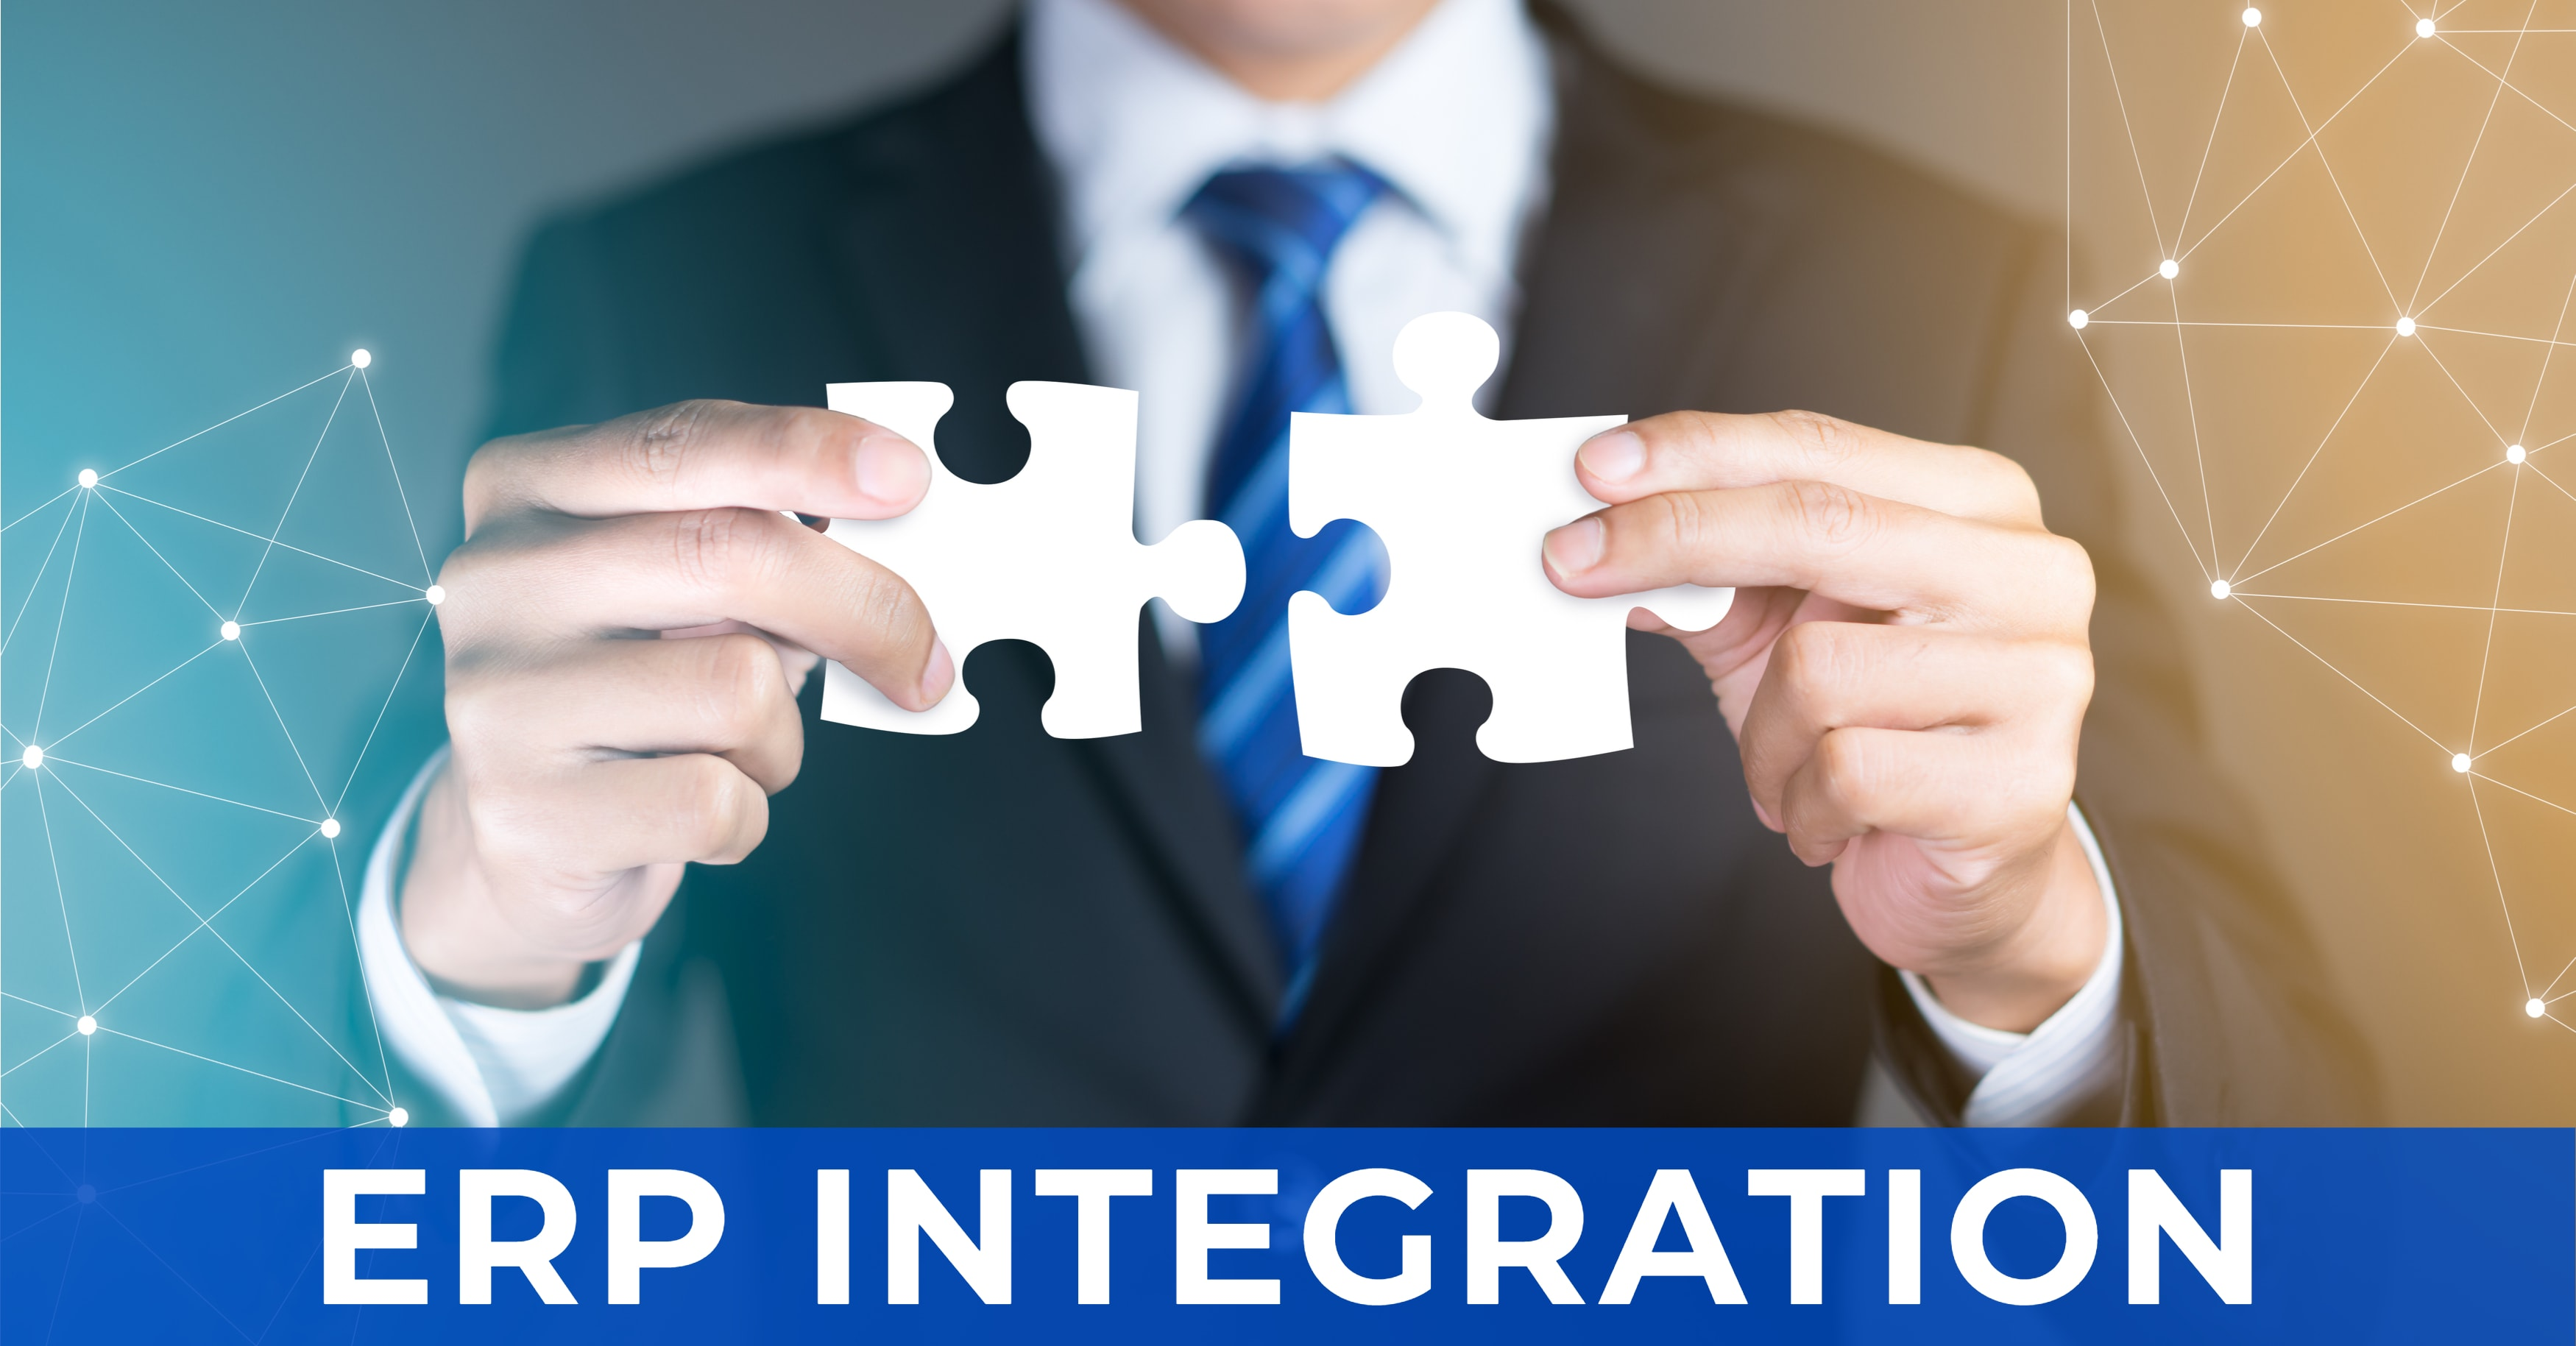 ERP Integration: The Solution to Your Business Problems